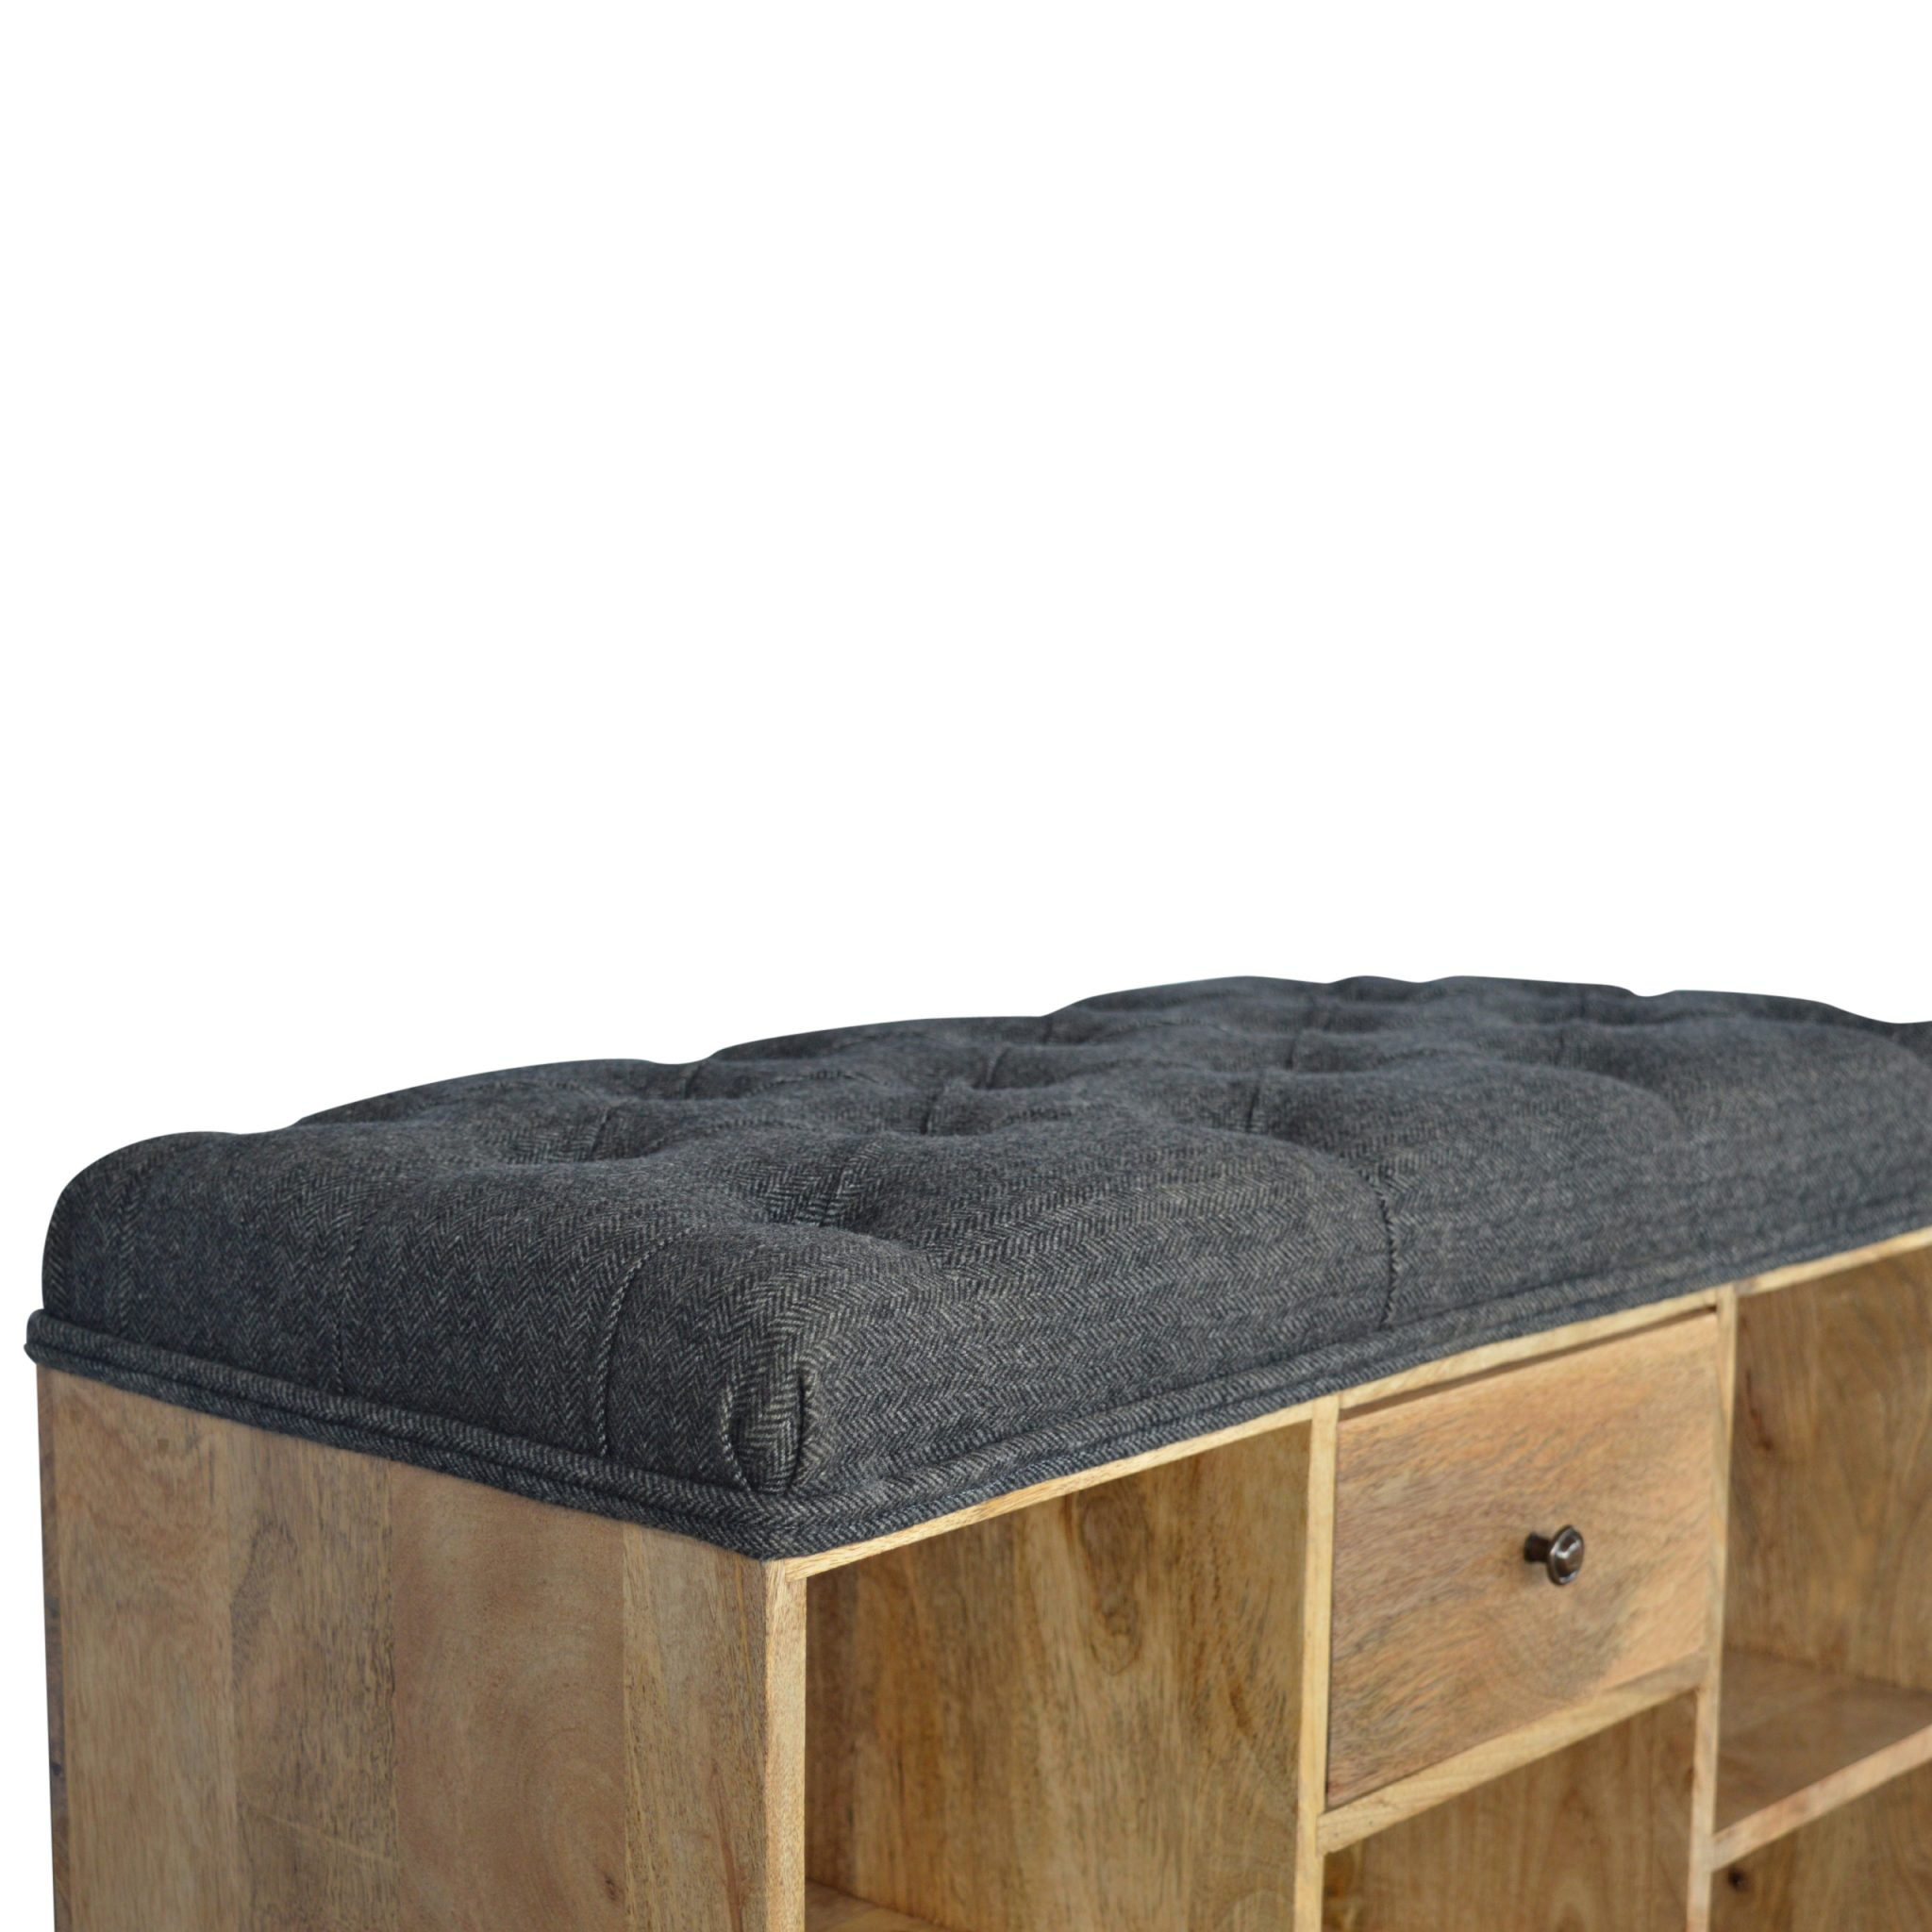 Solid Wood Shoe Storage Bench With Upholstered Black Tweed